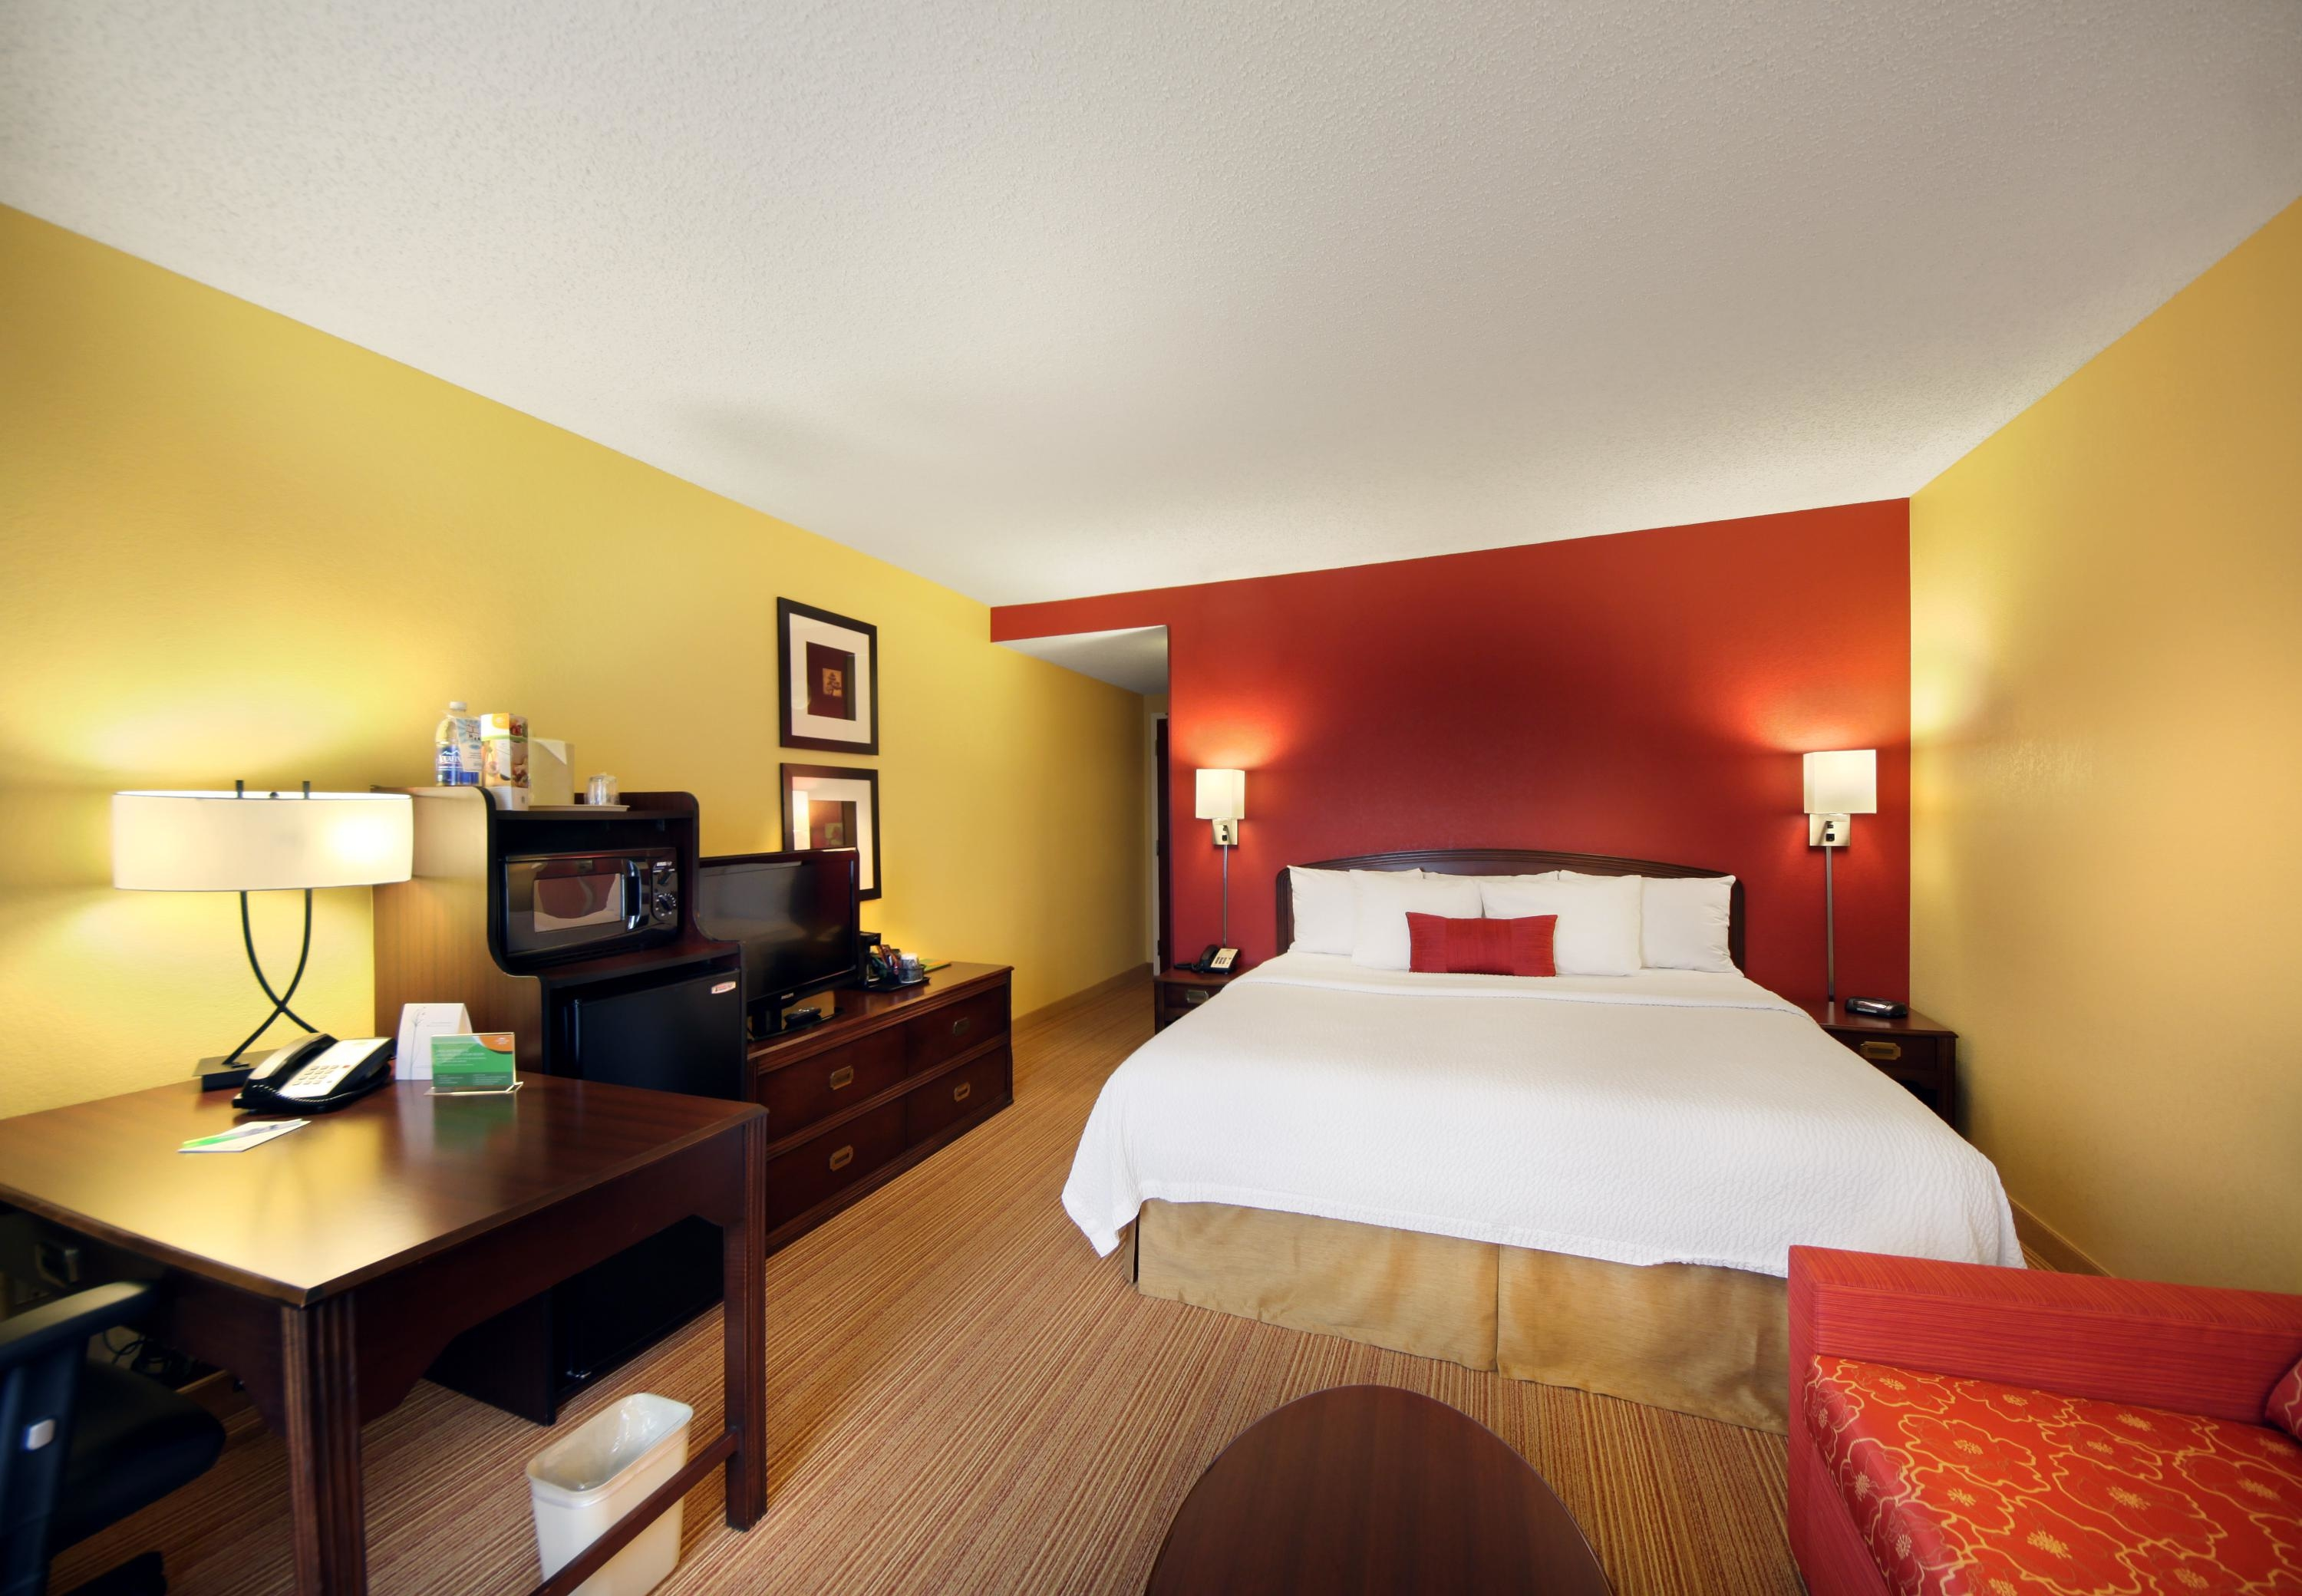 Courtyard by Marriott Tulsa Central image 0